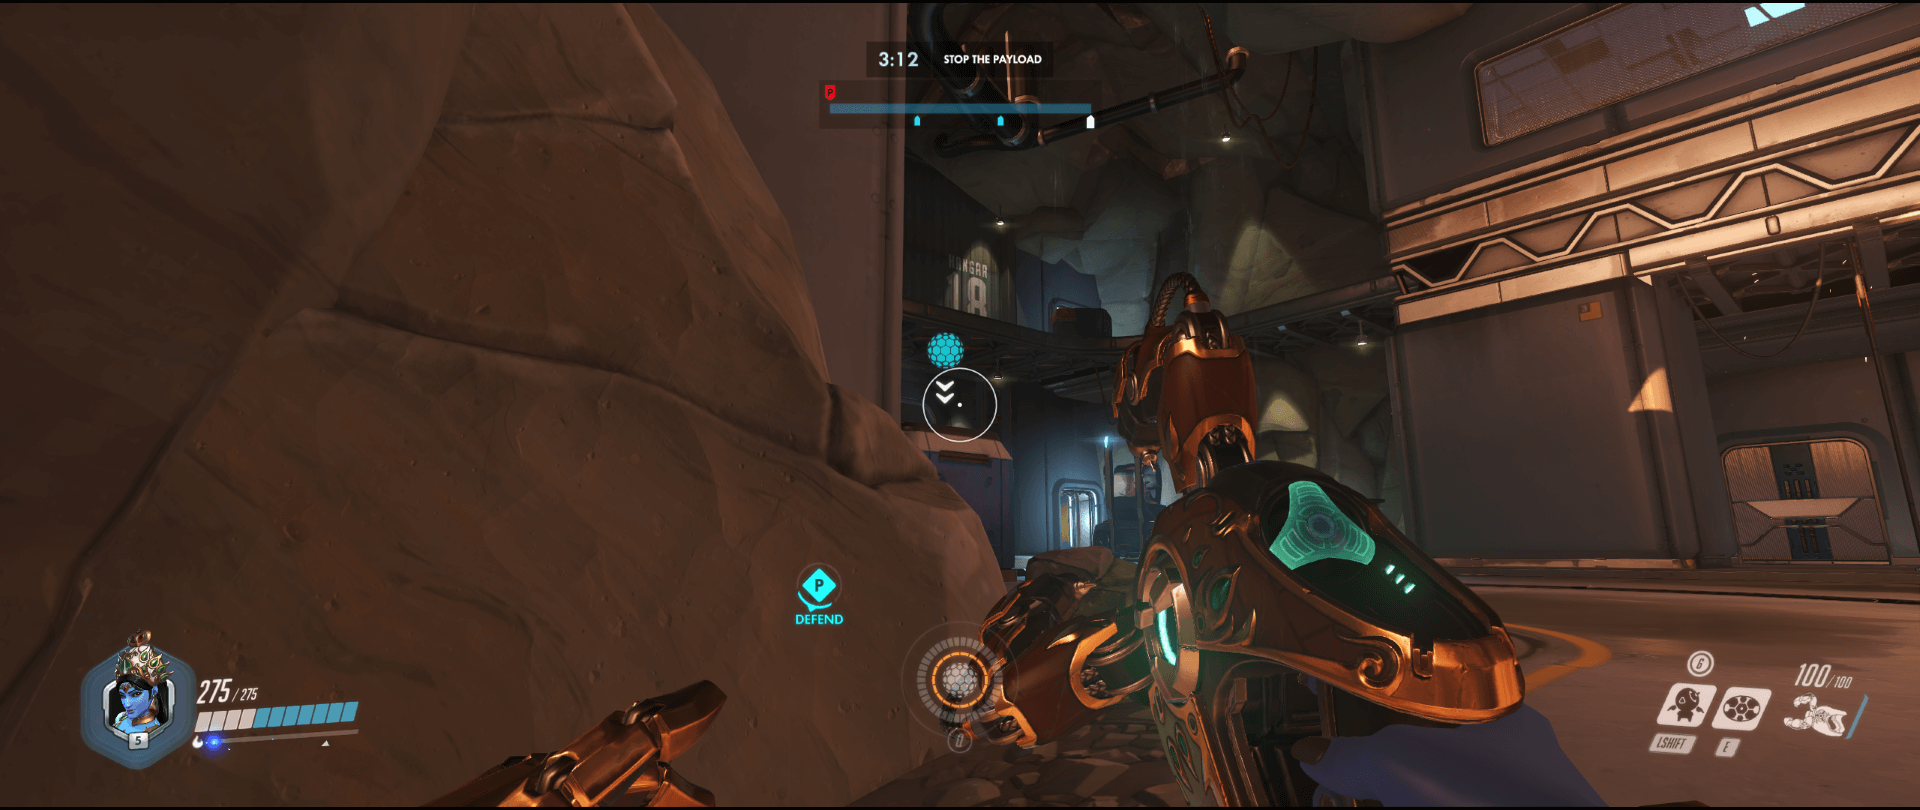 Symmetra shield generator spot Watchpoint Gibraltar left high ground range first point.png